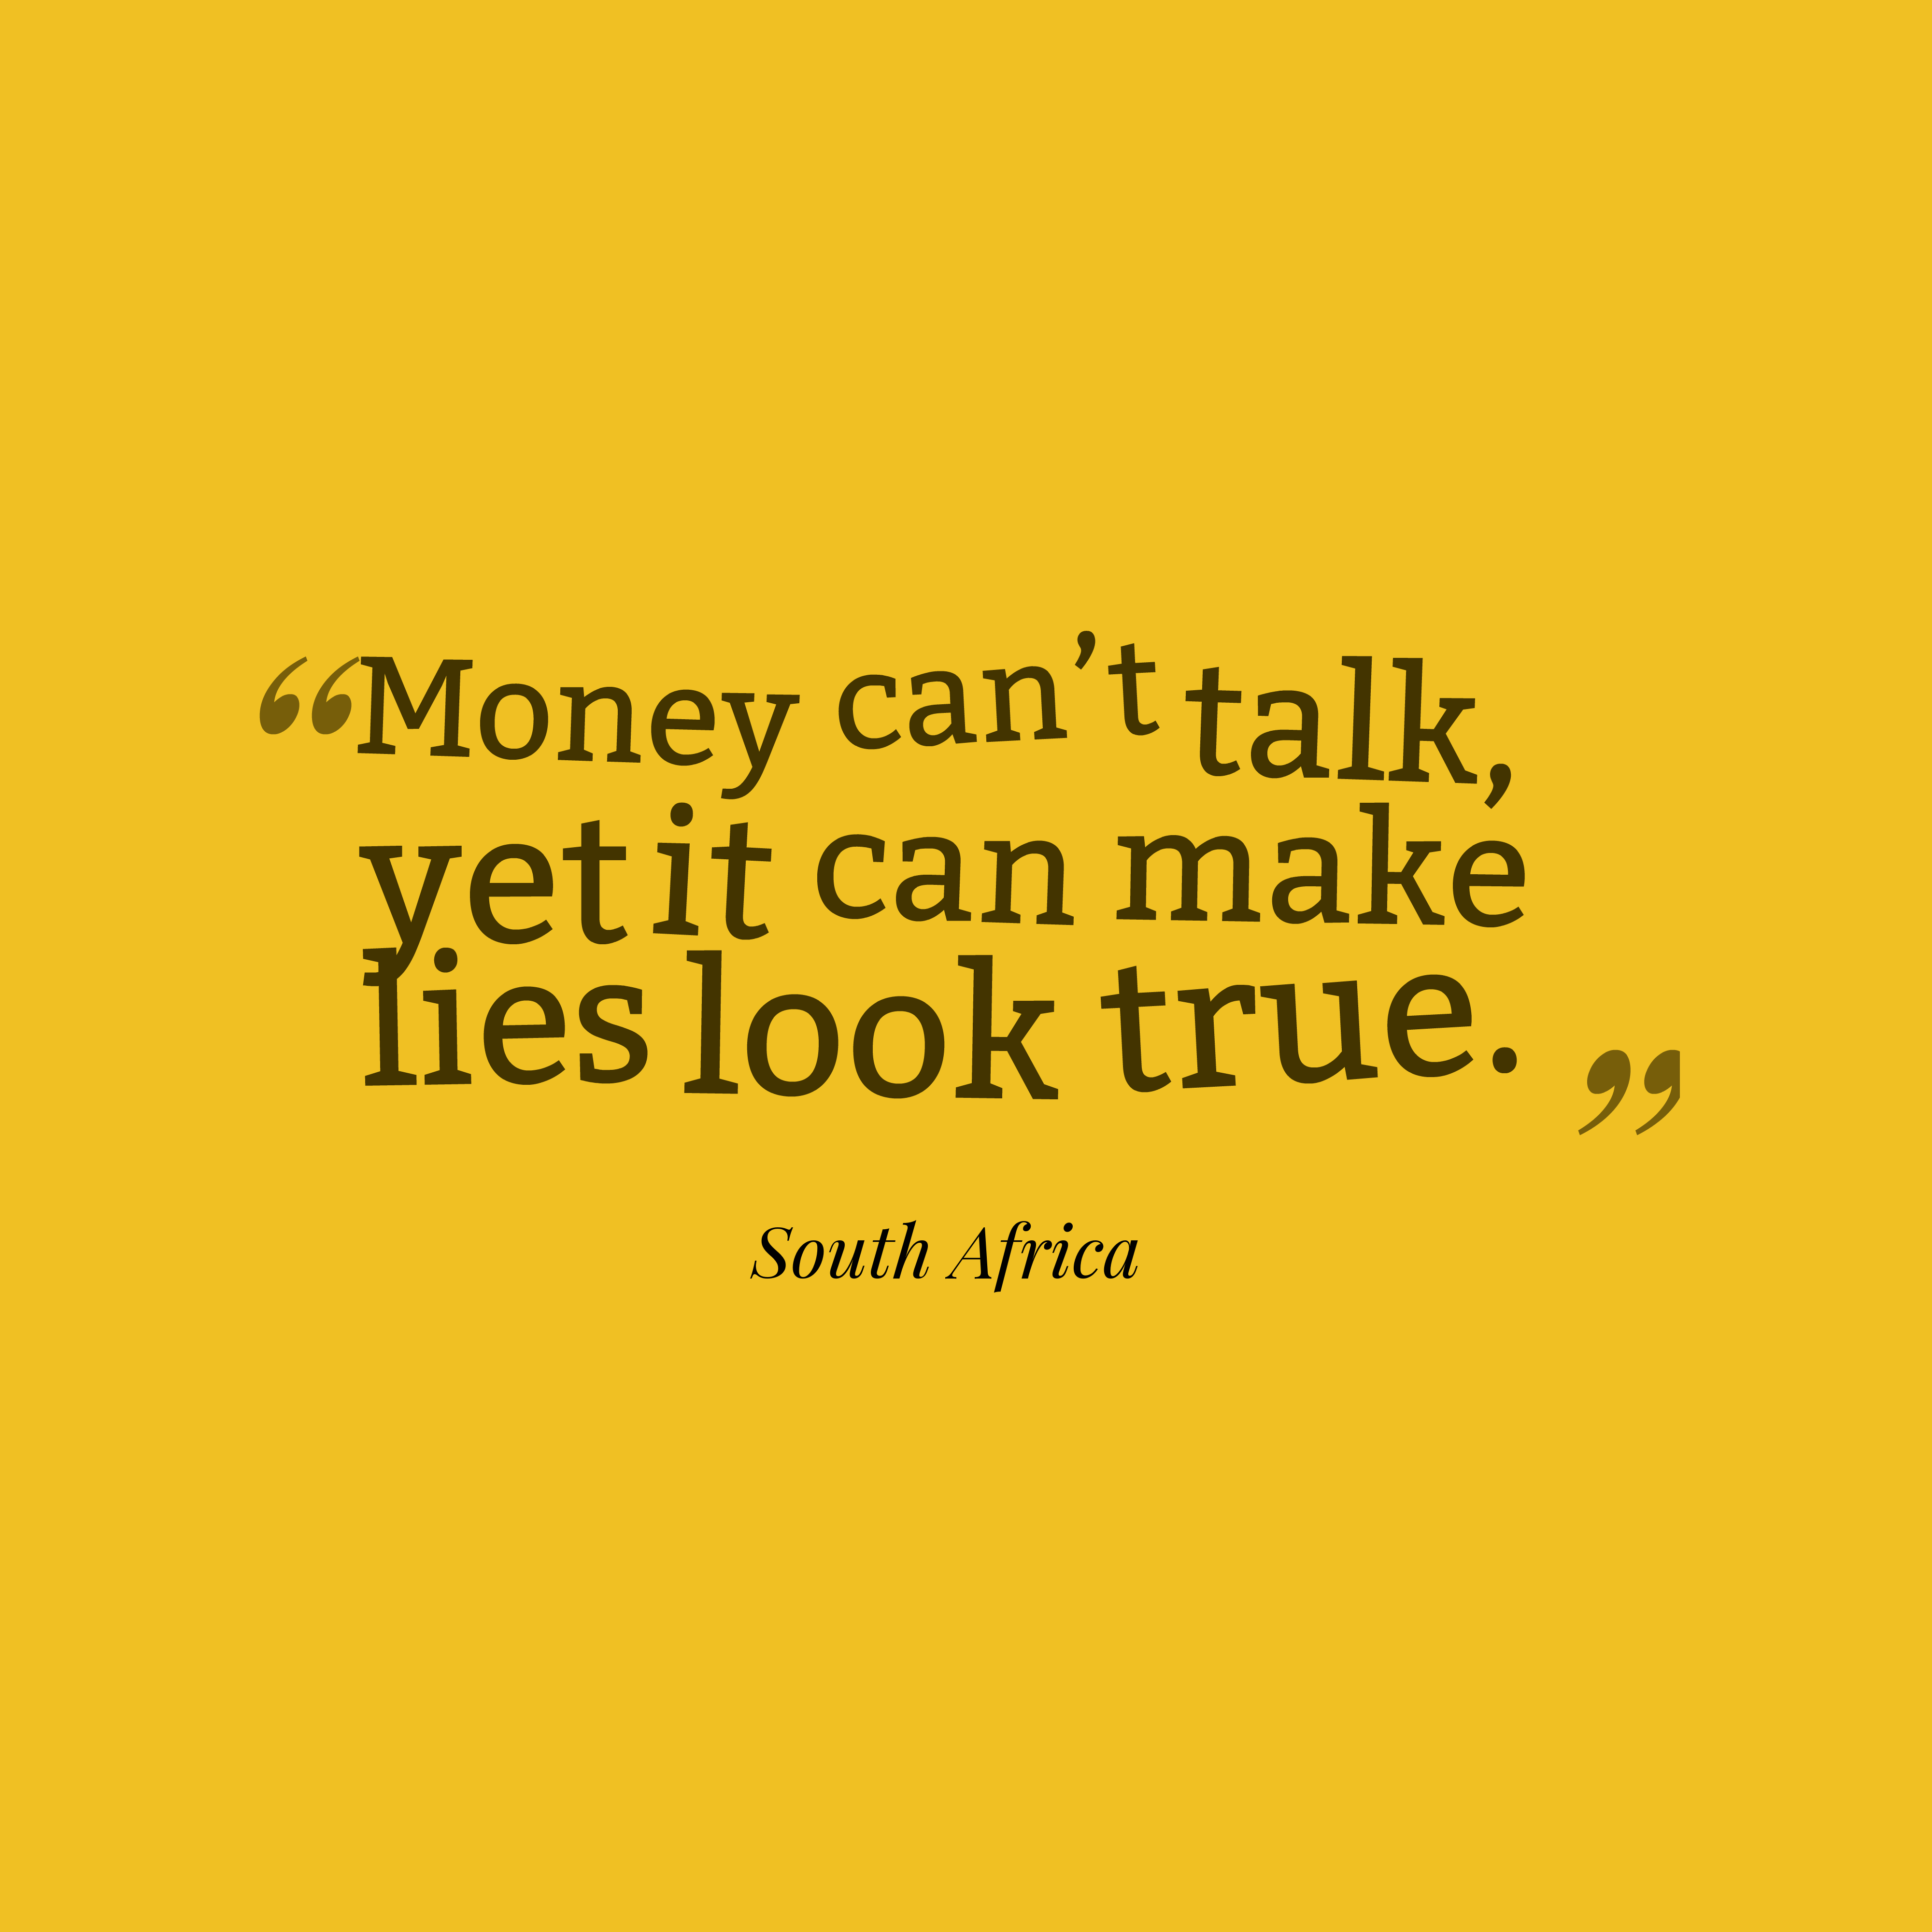 Quotes image of Money can't talk, yet it can make lies look true.